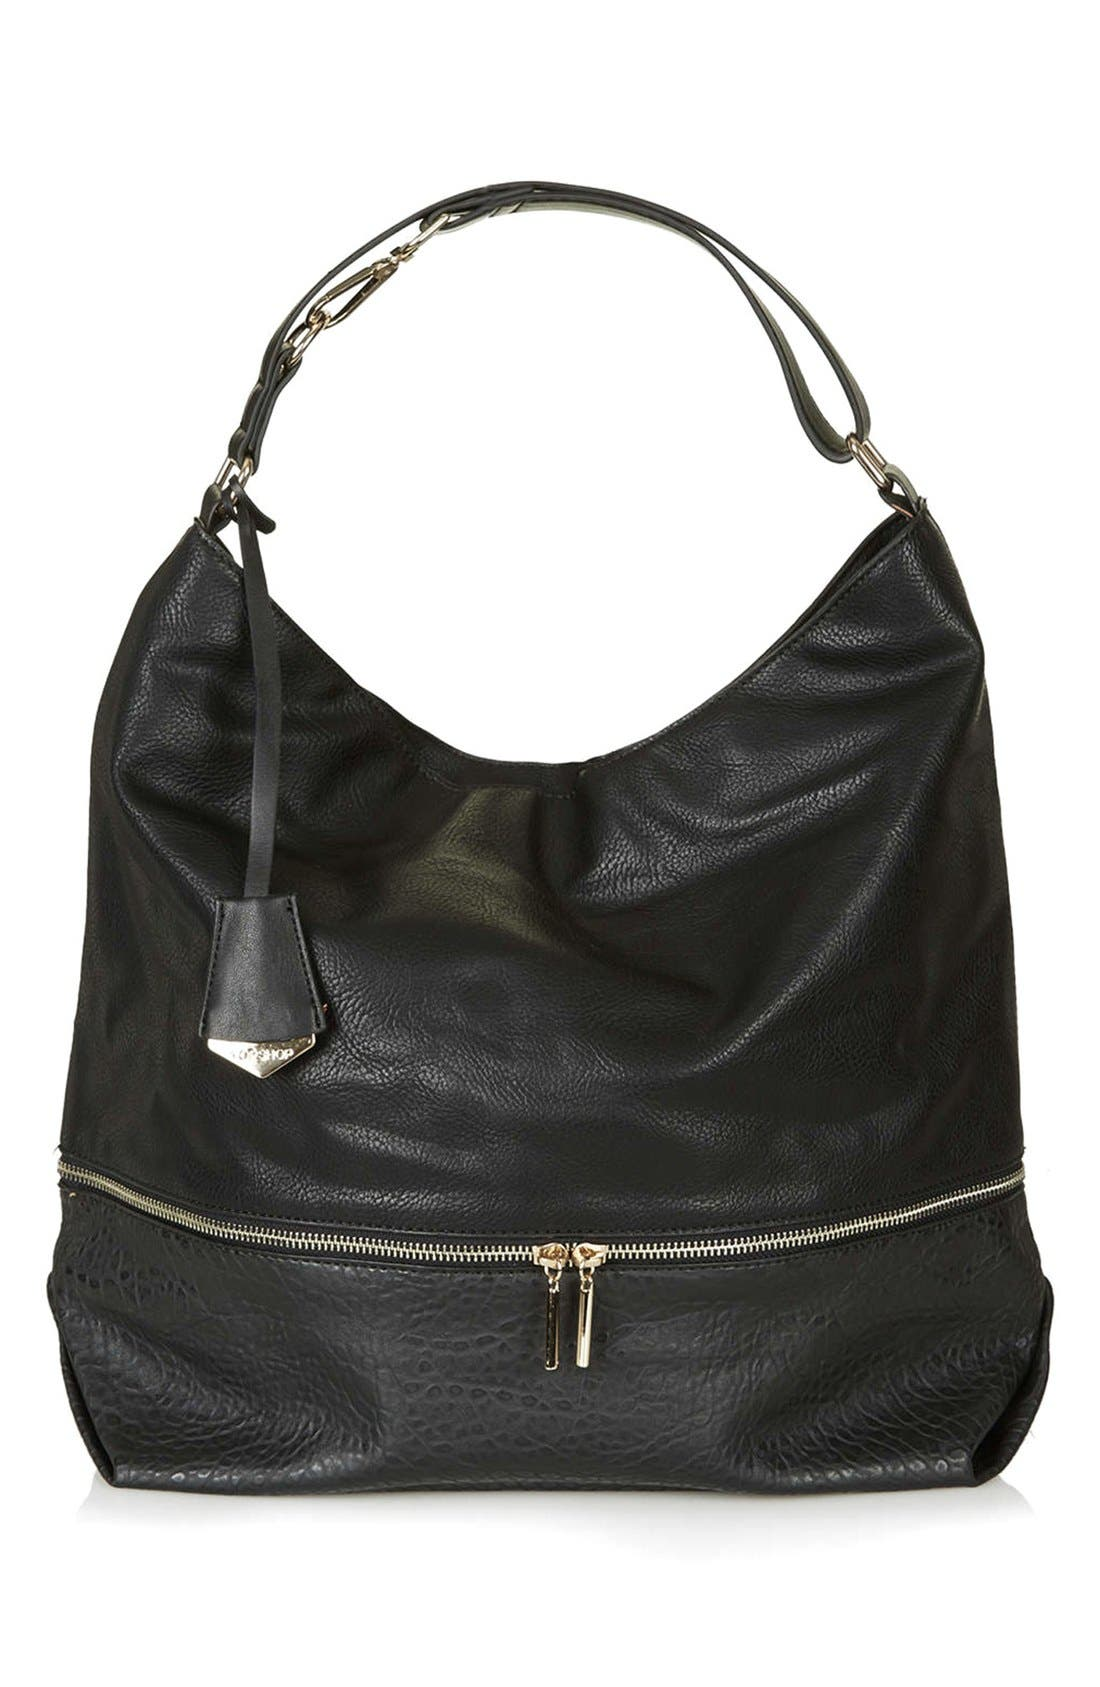 Alternate Image 1 Selected - Topshop Slouchy Hobo Bag